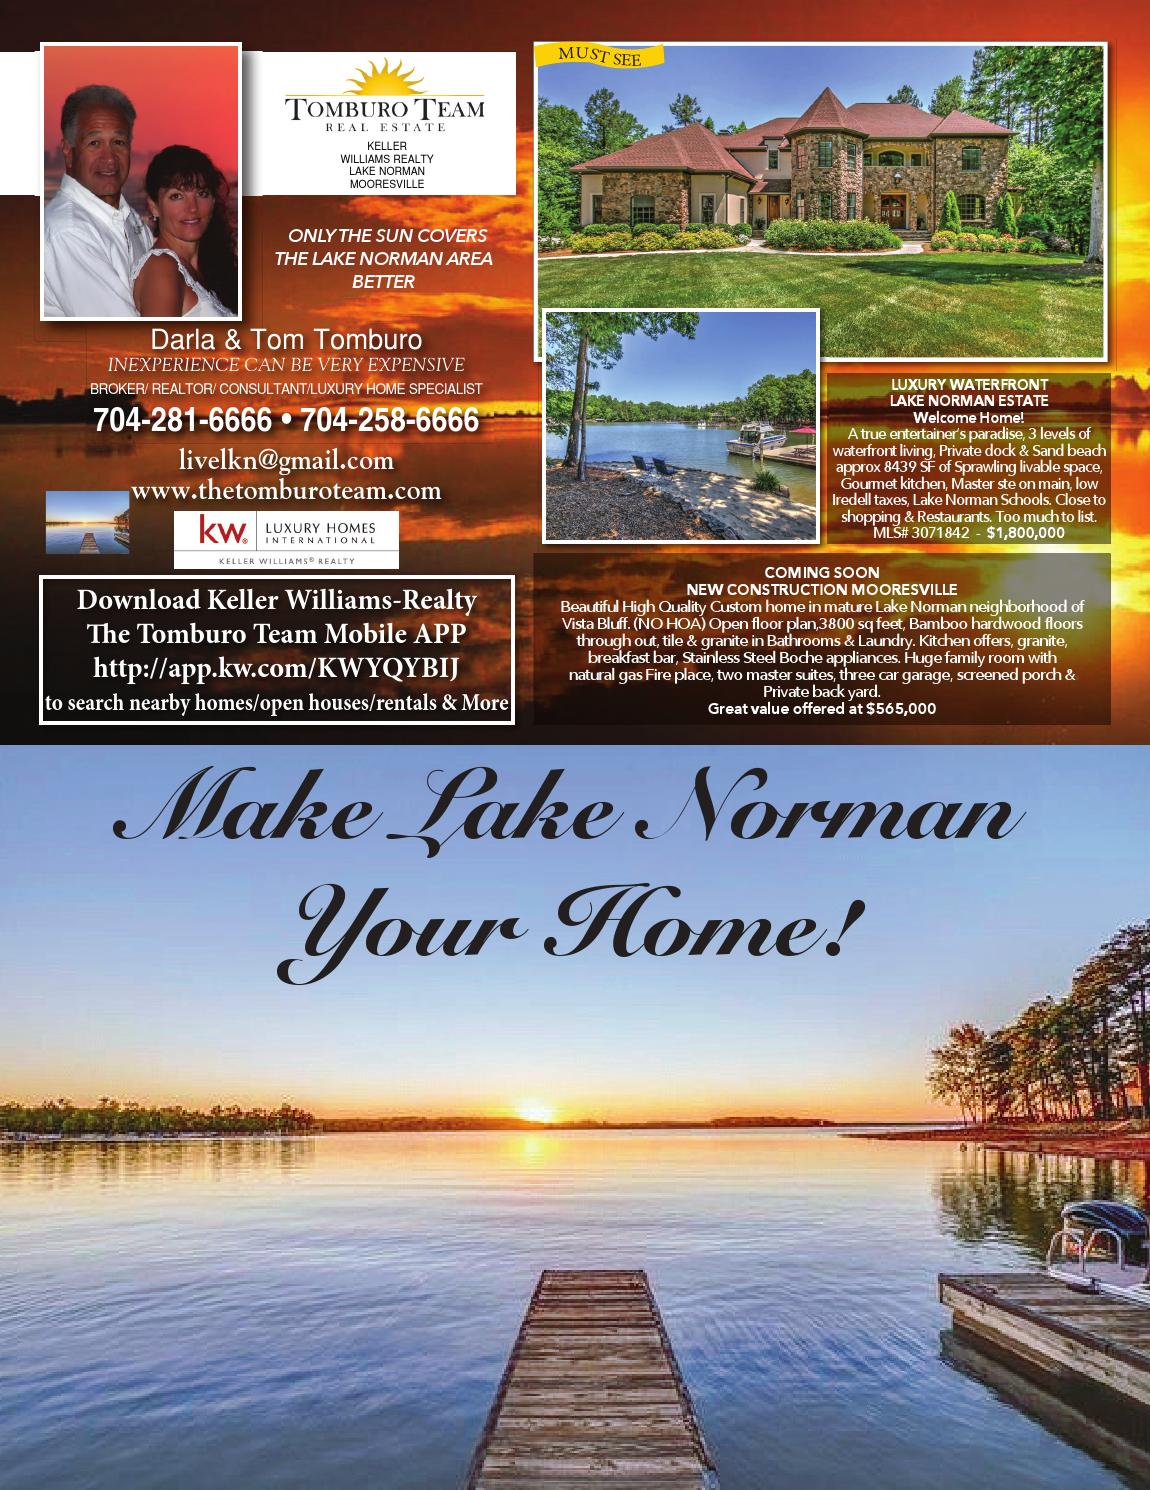 The Real Estate Book Home & Lifestyle Guide of Lake Norman